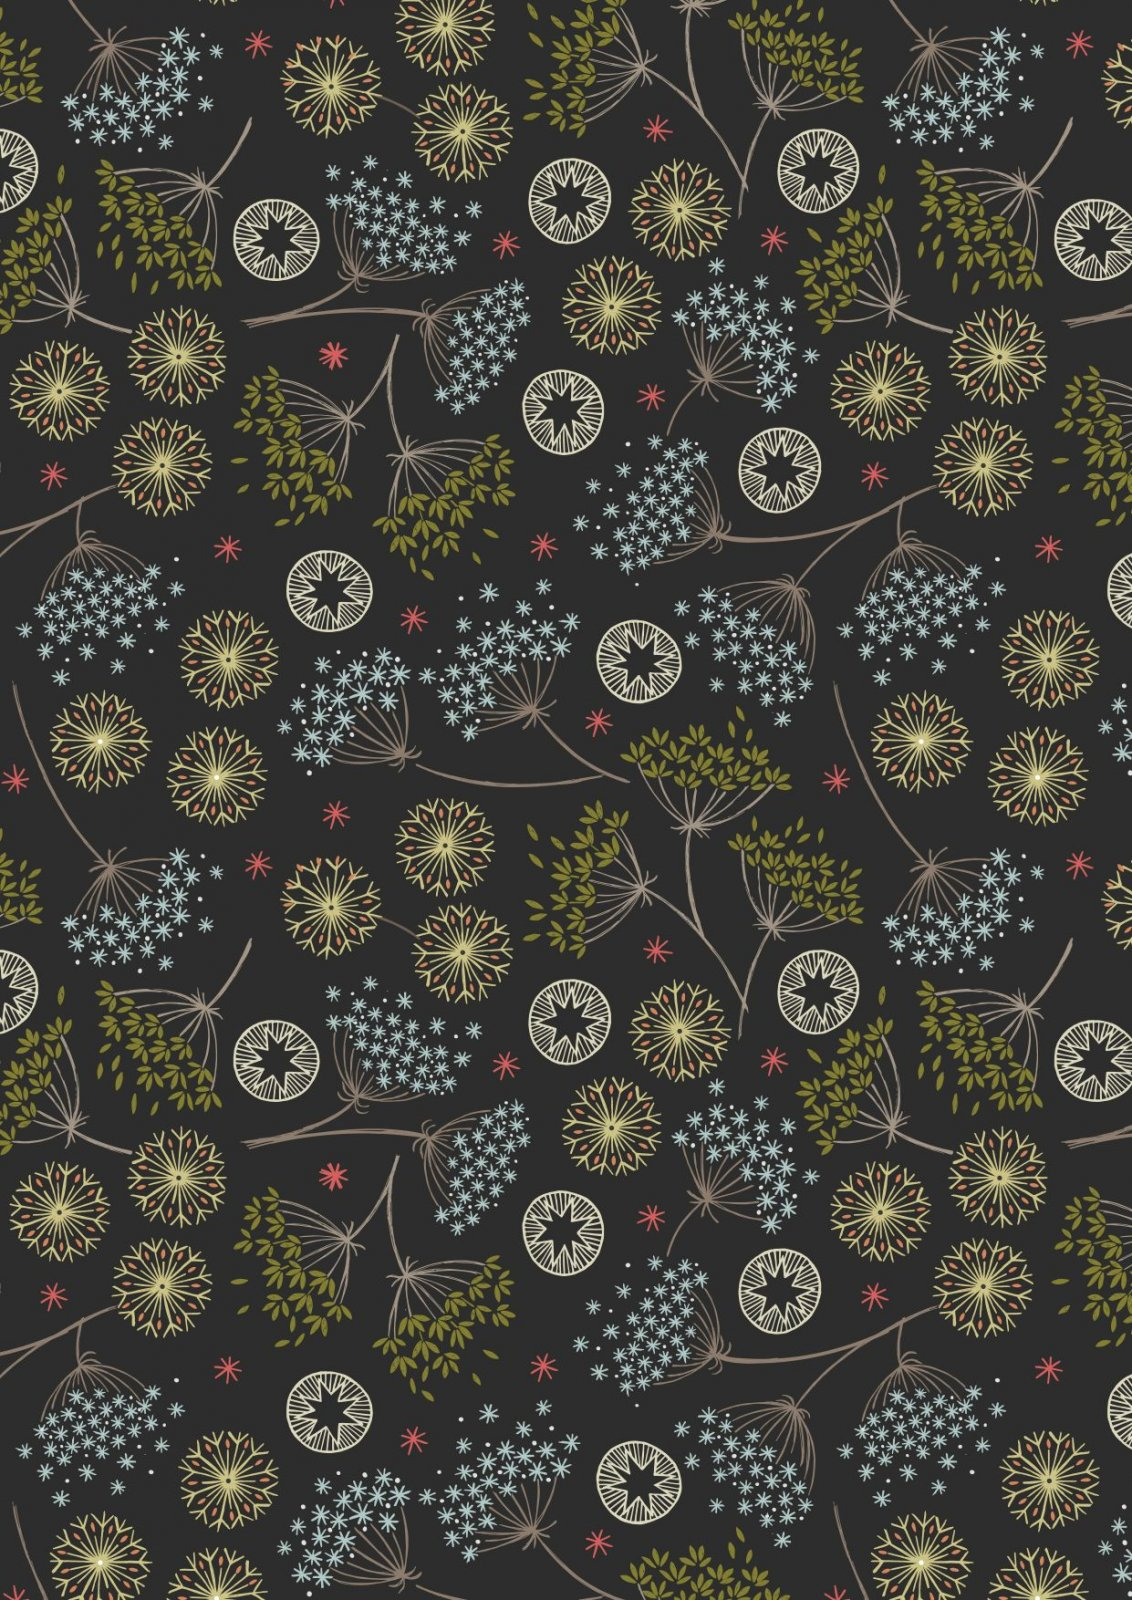 New Forest Winter - Winter Floral - Black